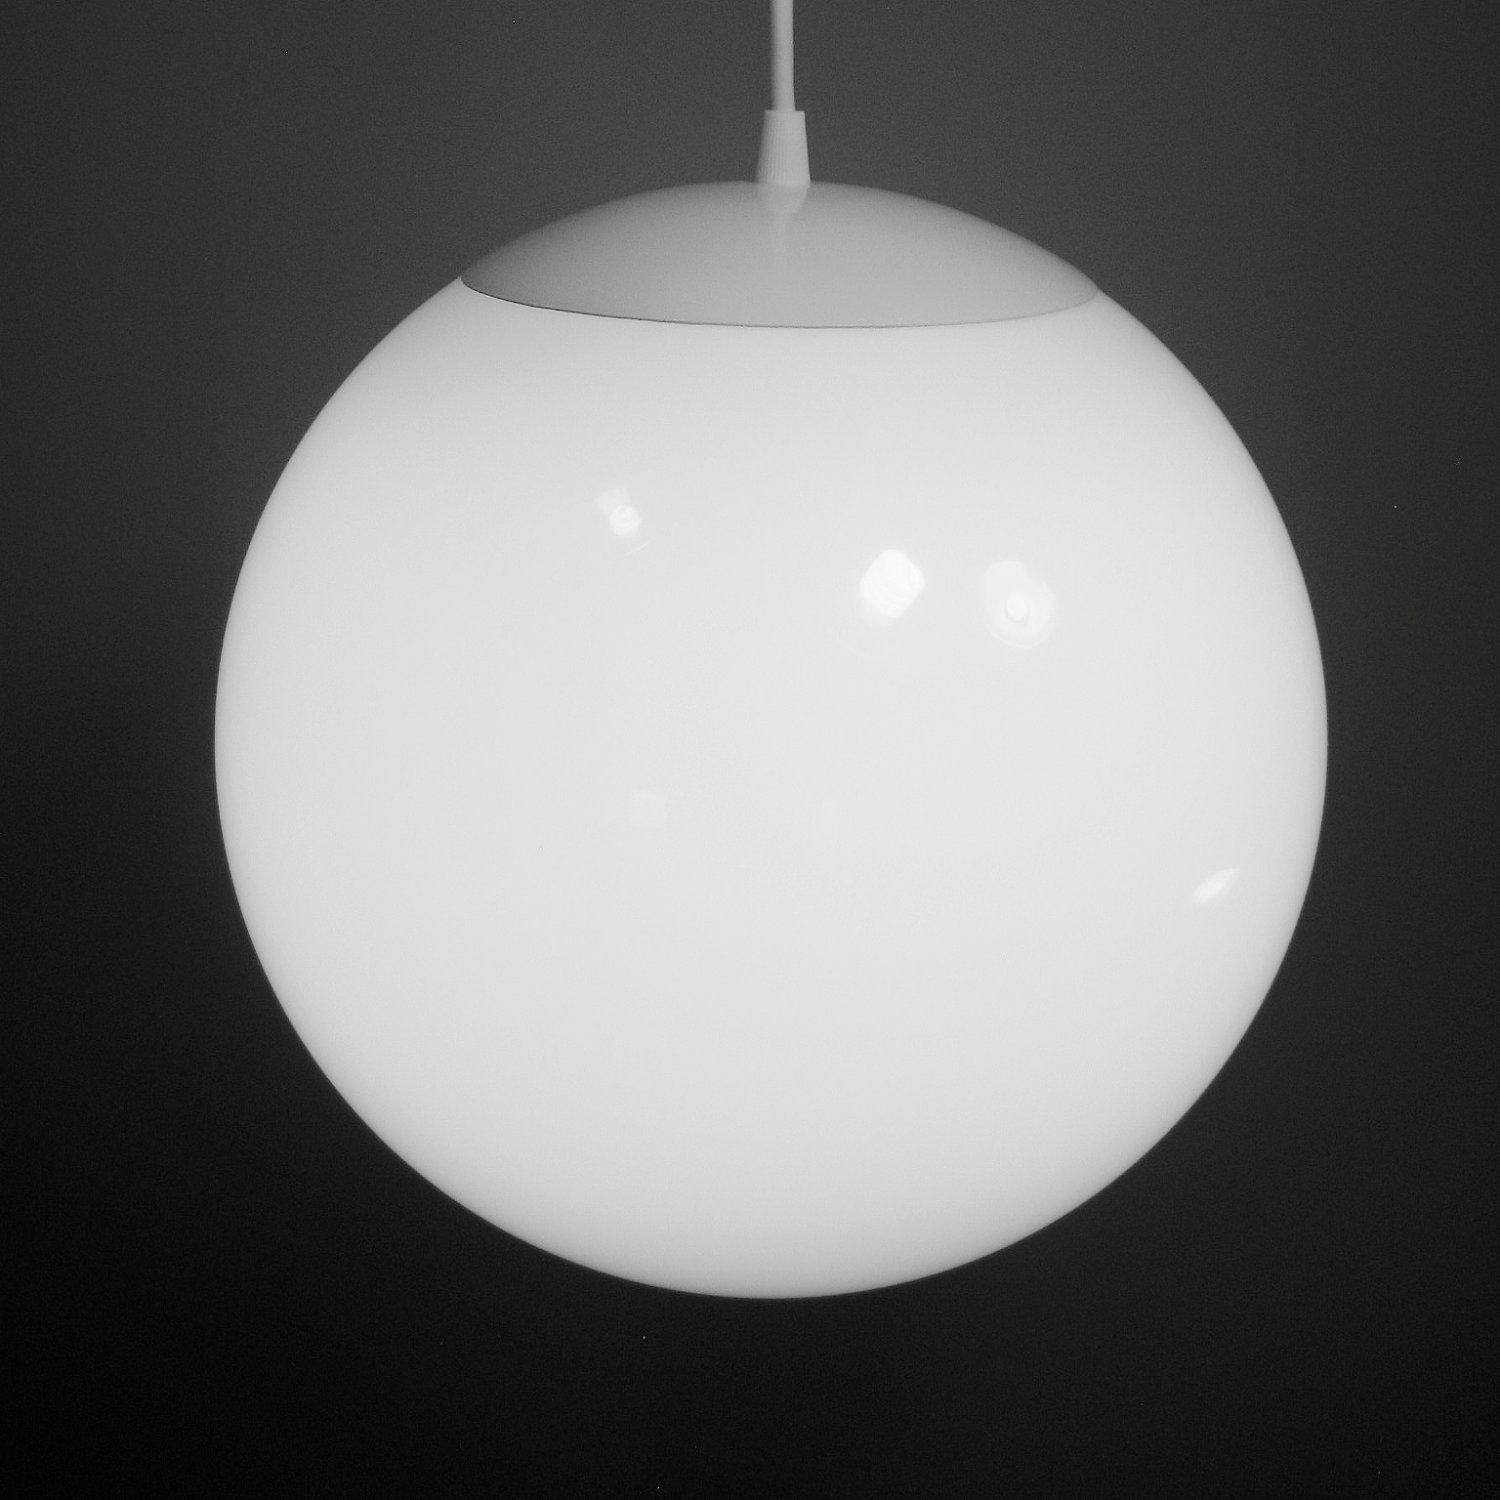 Pendant light large 12 inch glass globe mid century for Mid century modern globe pendant light